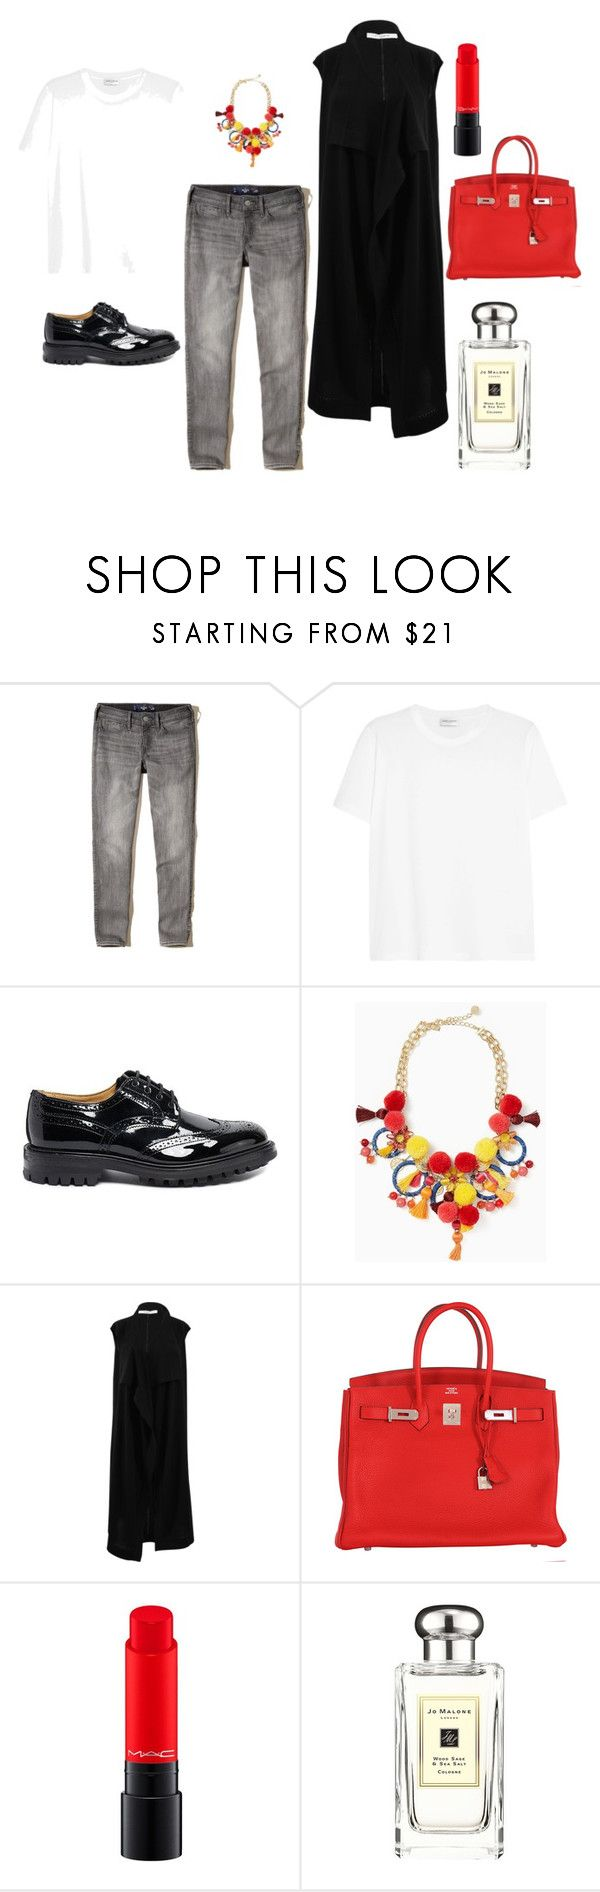 """Untitled #29"" by janka-dzurillova on Polyvore featuring Hollister Co., Yves Saint Laurent, Kate Spade, Givenchy, Hermès, MAC Cosmetics and Jo Malone"